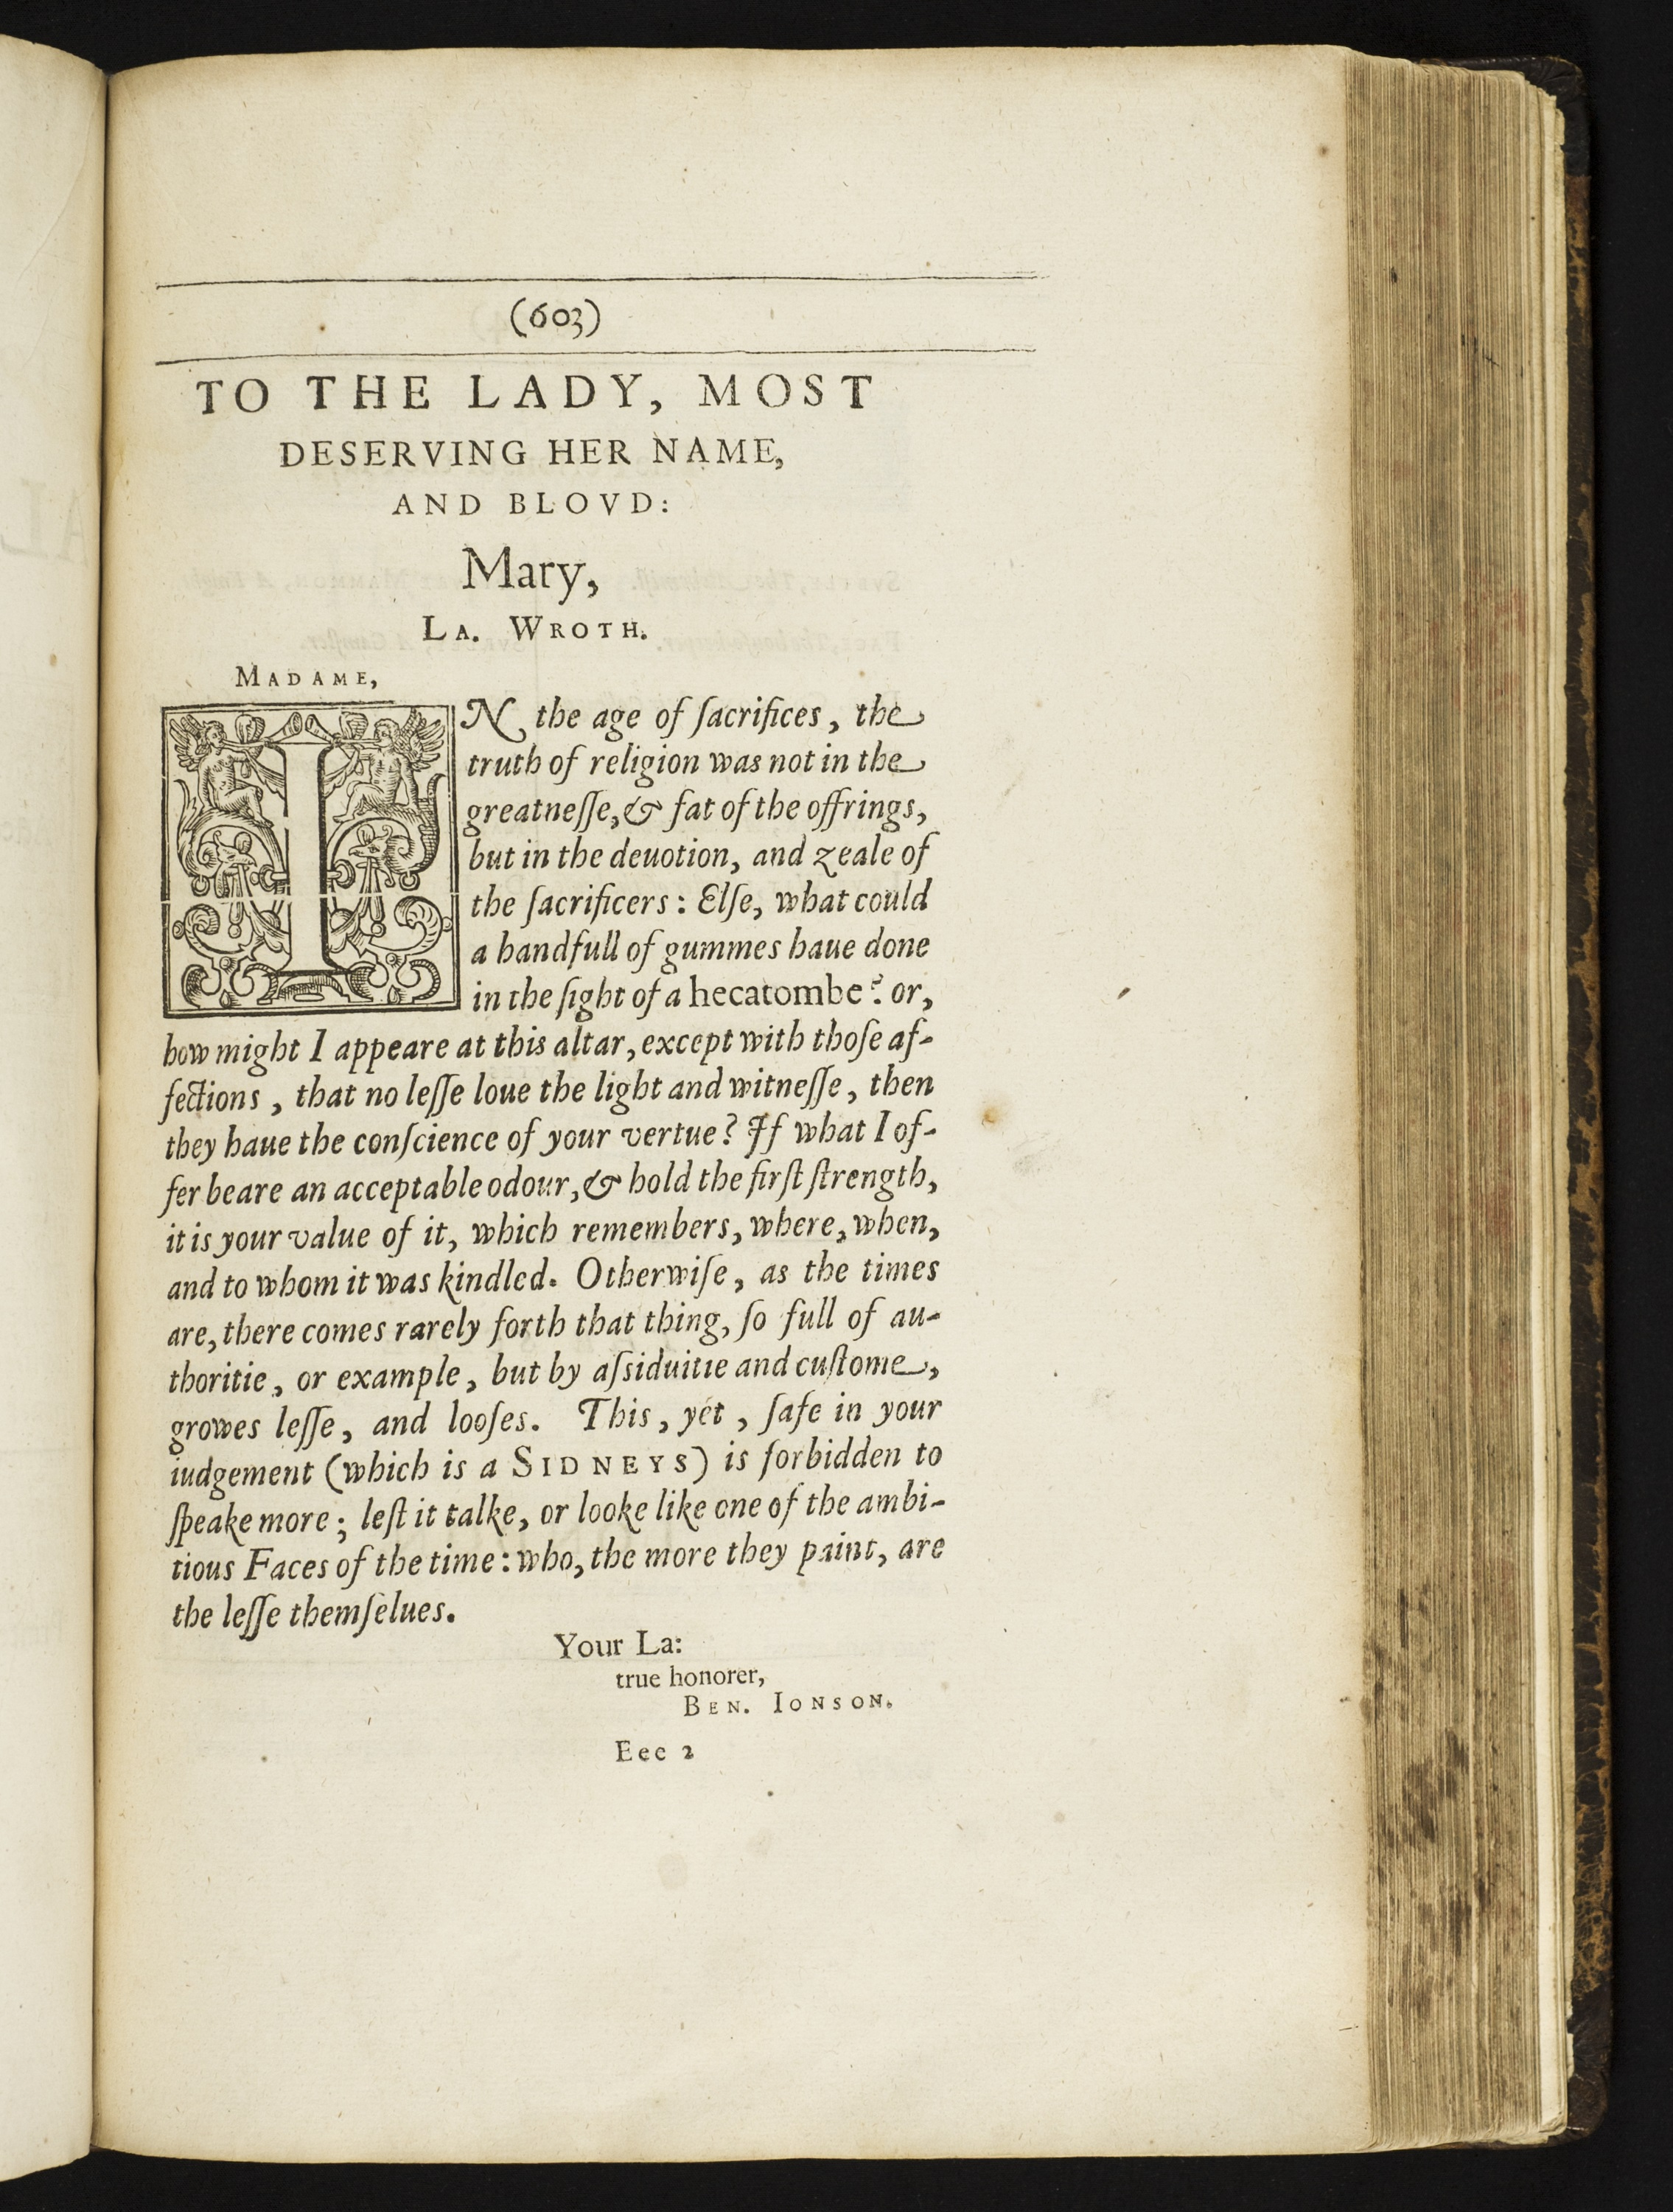 Image of letter to Mary Wroth